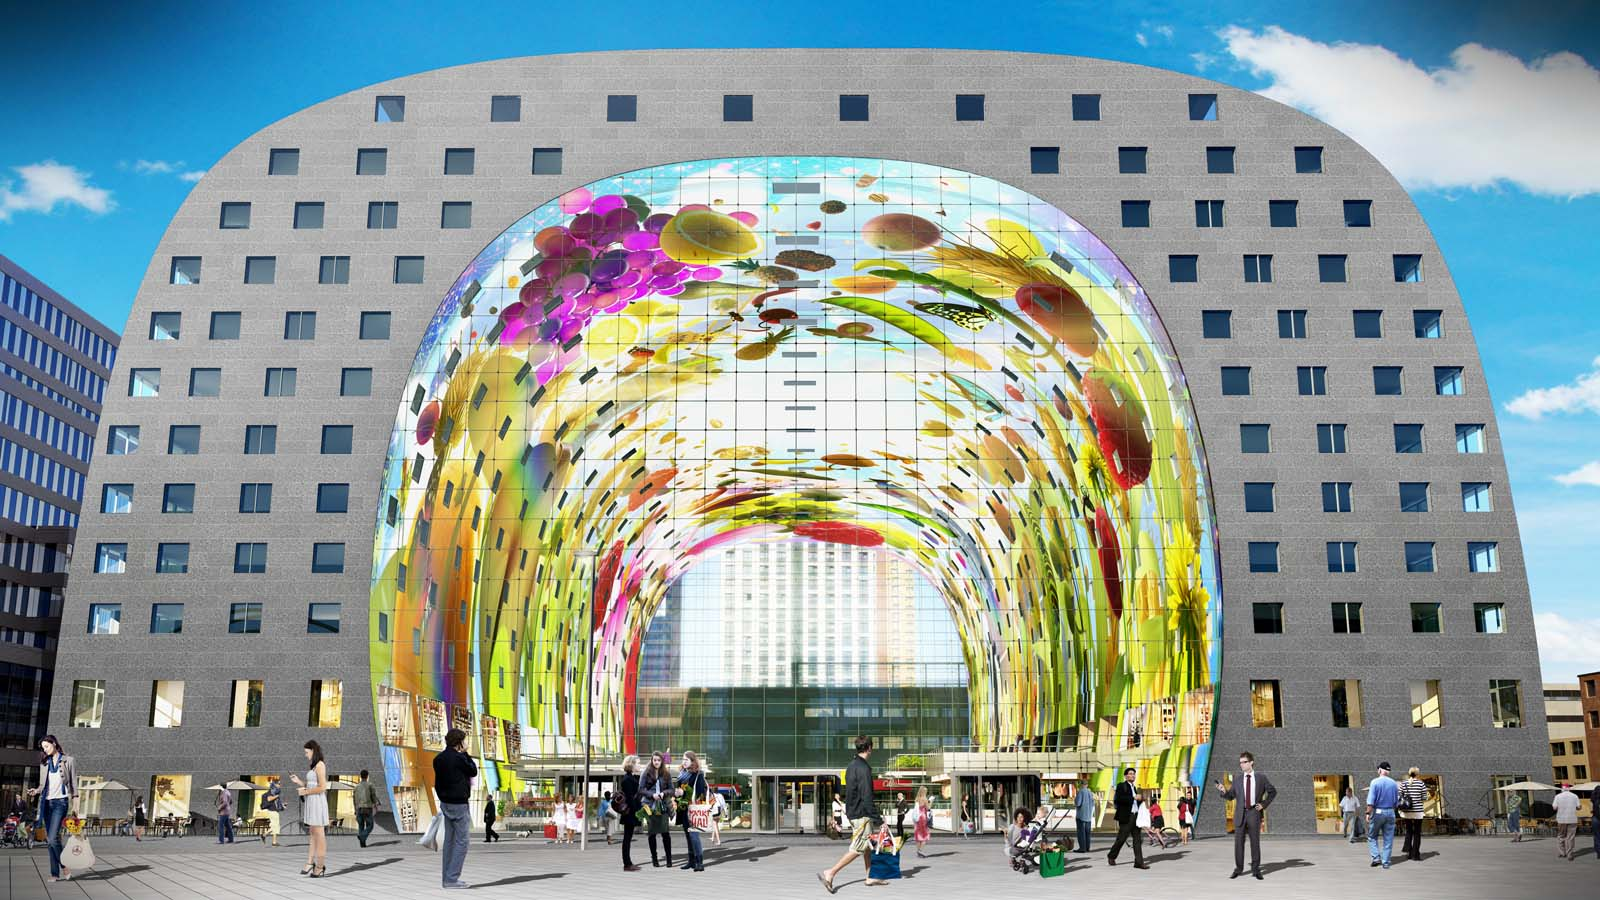 Markthal Rotterdam, MARKTHAL ROTTERDAM: AN OUTSTANDING 36,000 SQ FT MURAL IS DECORATED ...